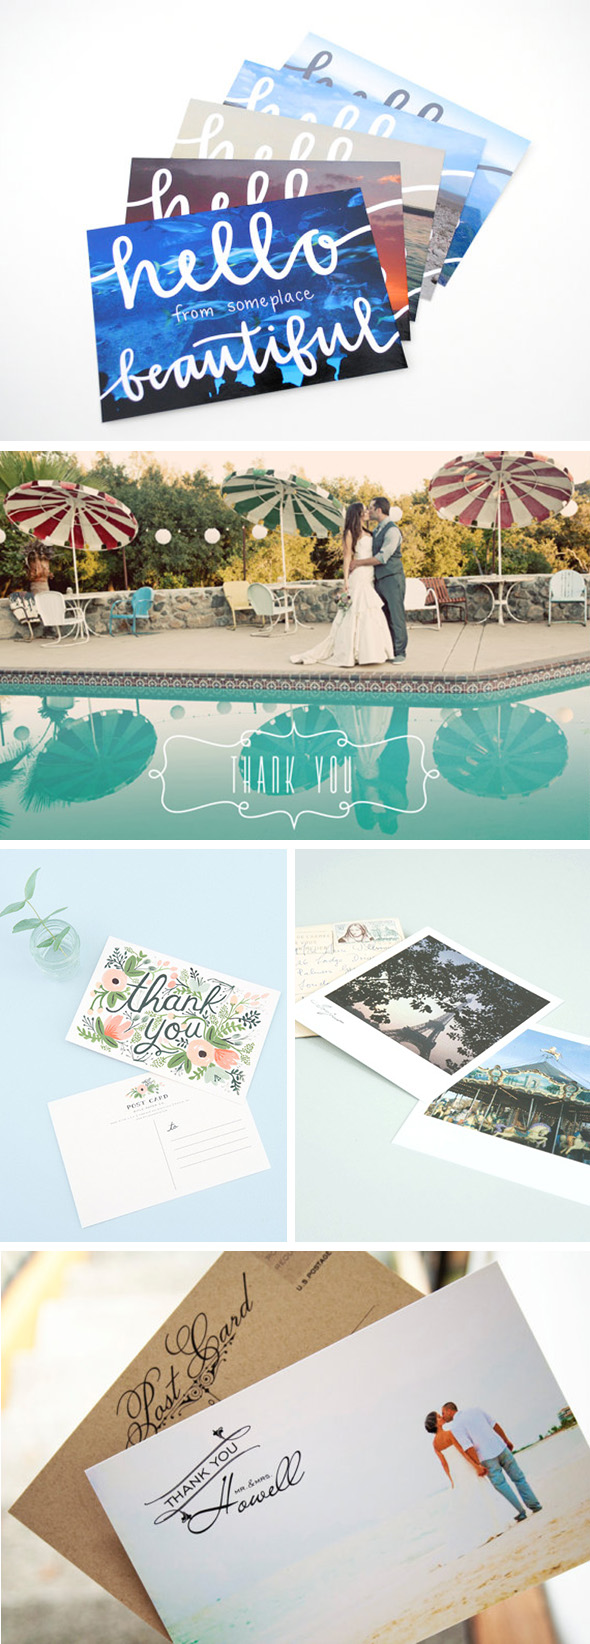 wedding thank you note postcards Destination Wedding Thank You Postcards